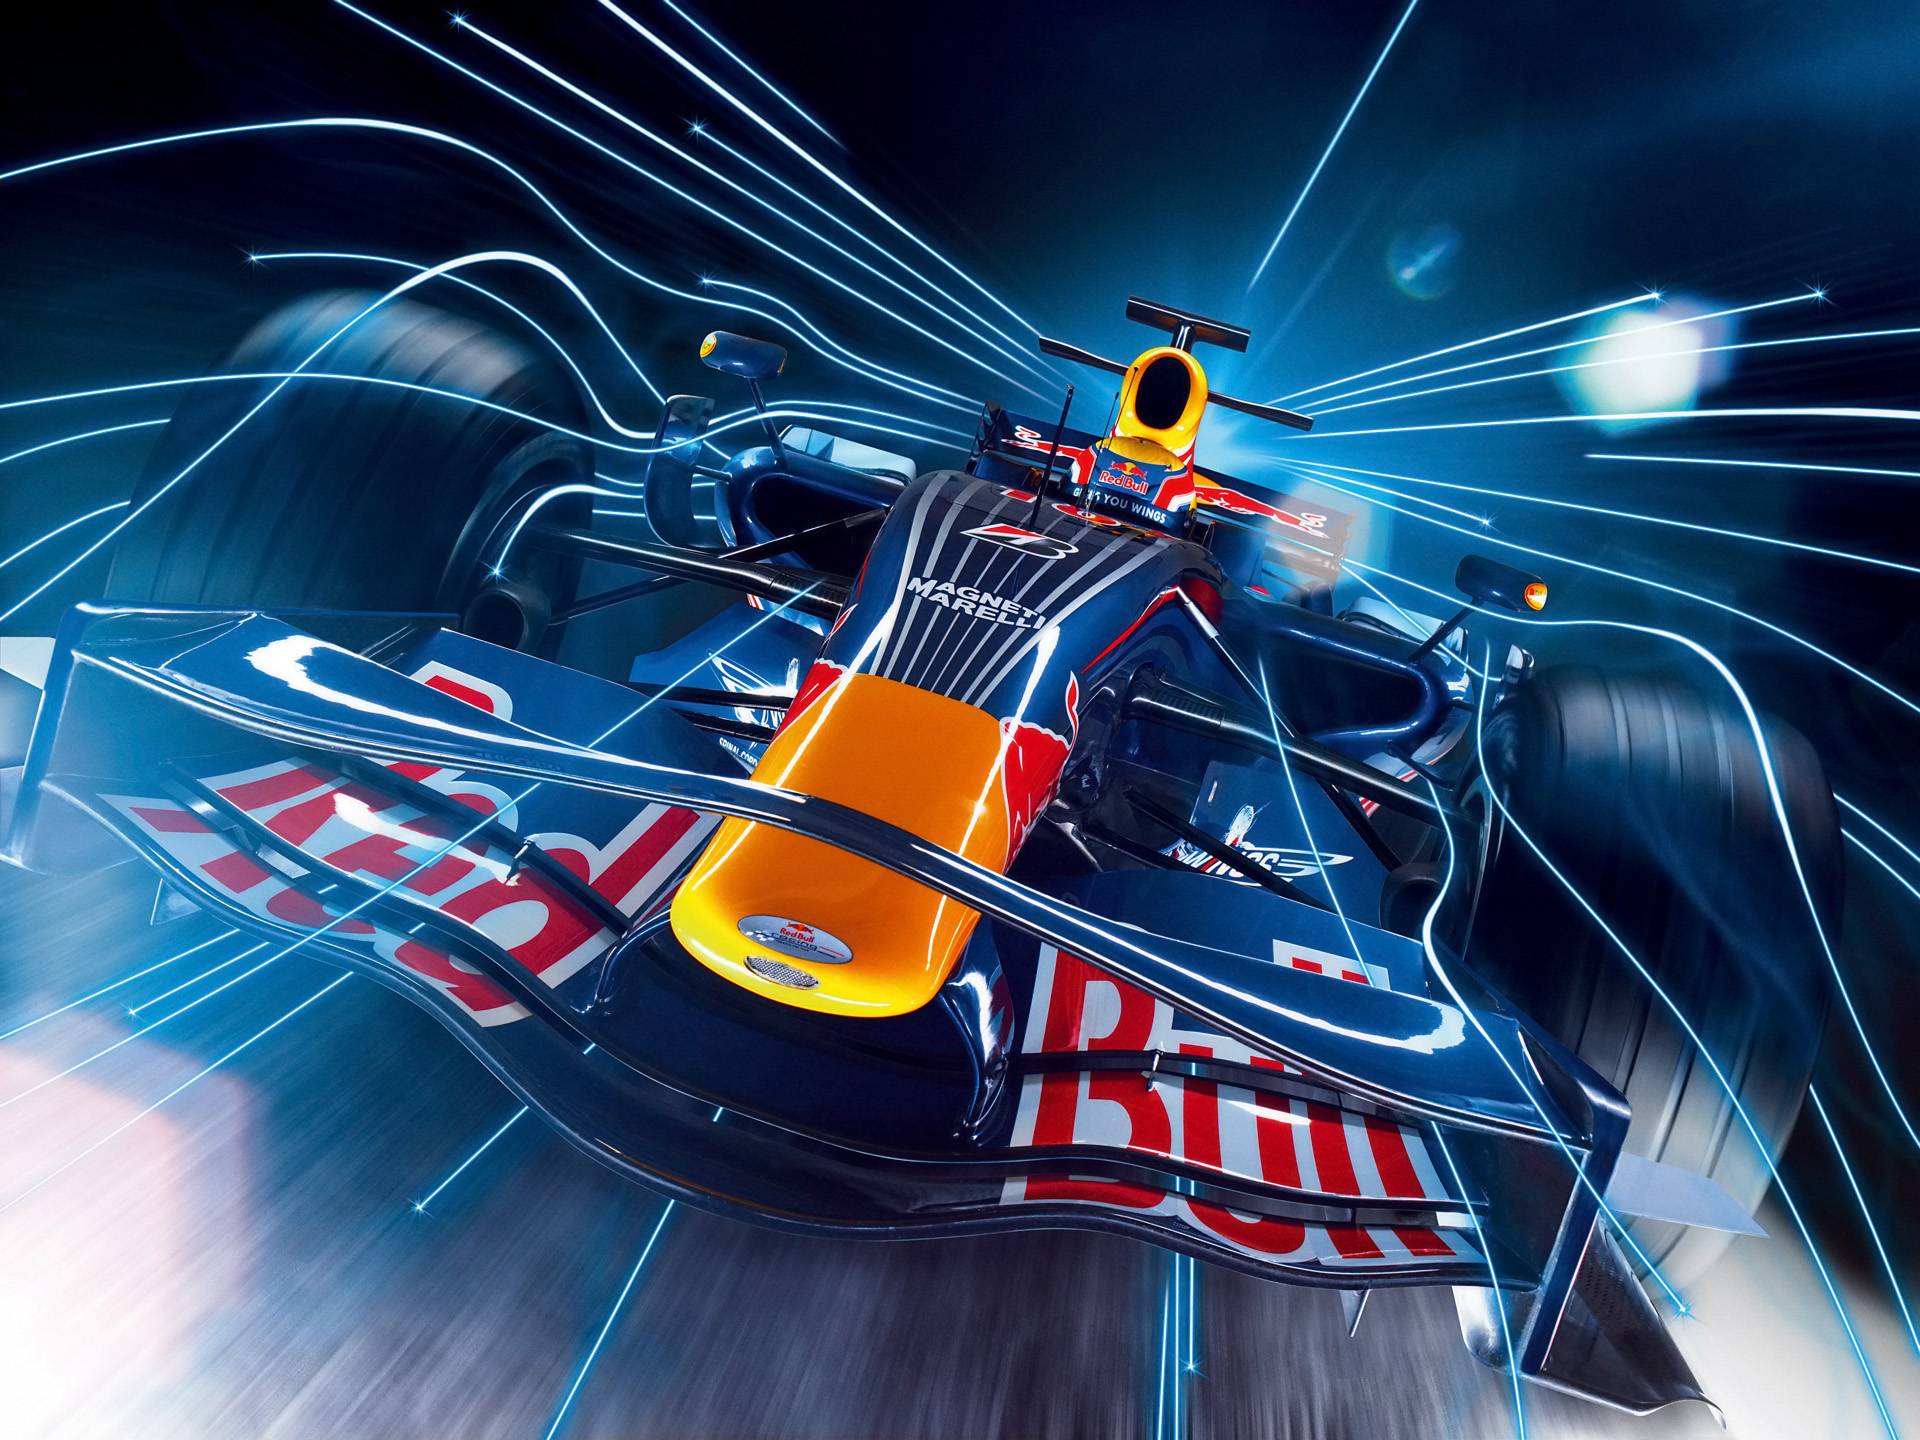 Red Bull's new augmented reality racing app also boosts sales